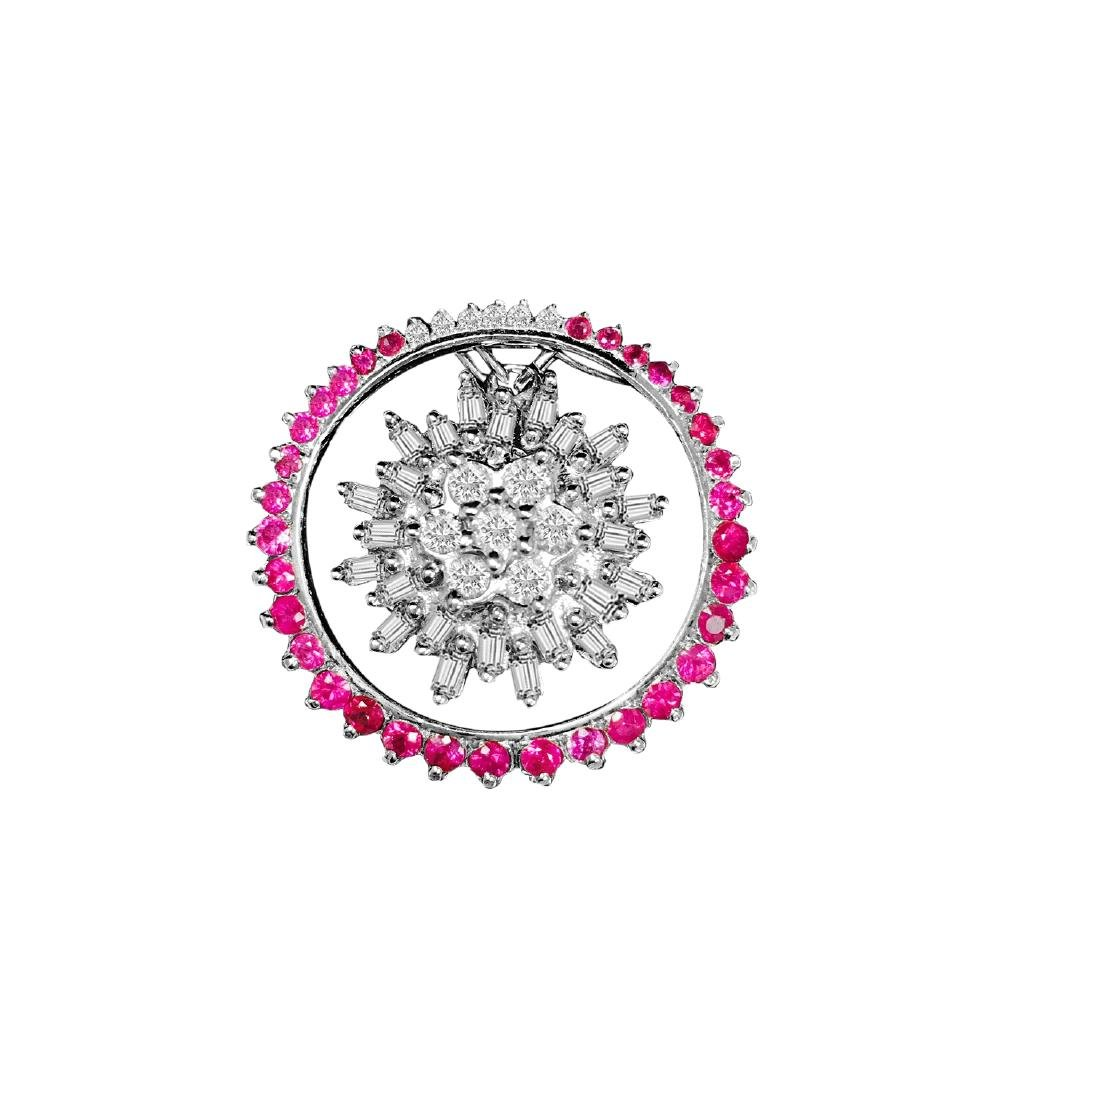 14K White Gold, Ruby & Diamond Pin AND Pendant